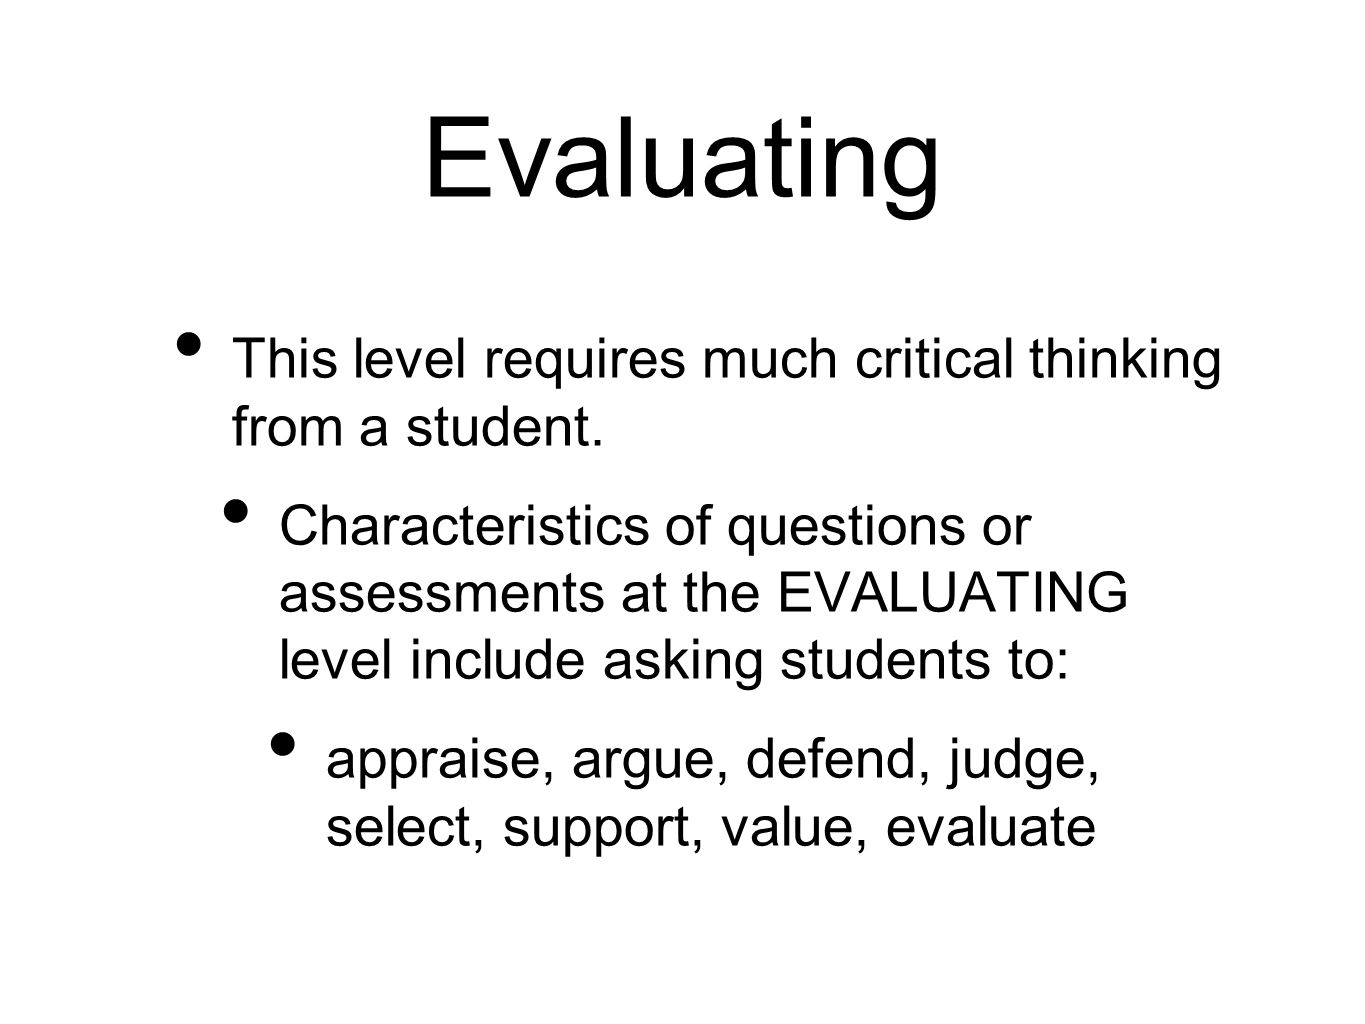 A Level Critical Thinking